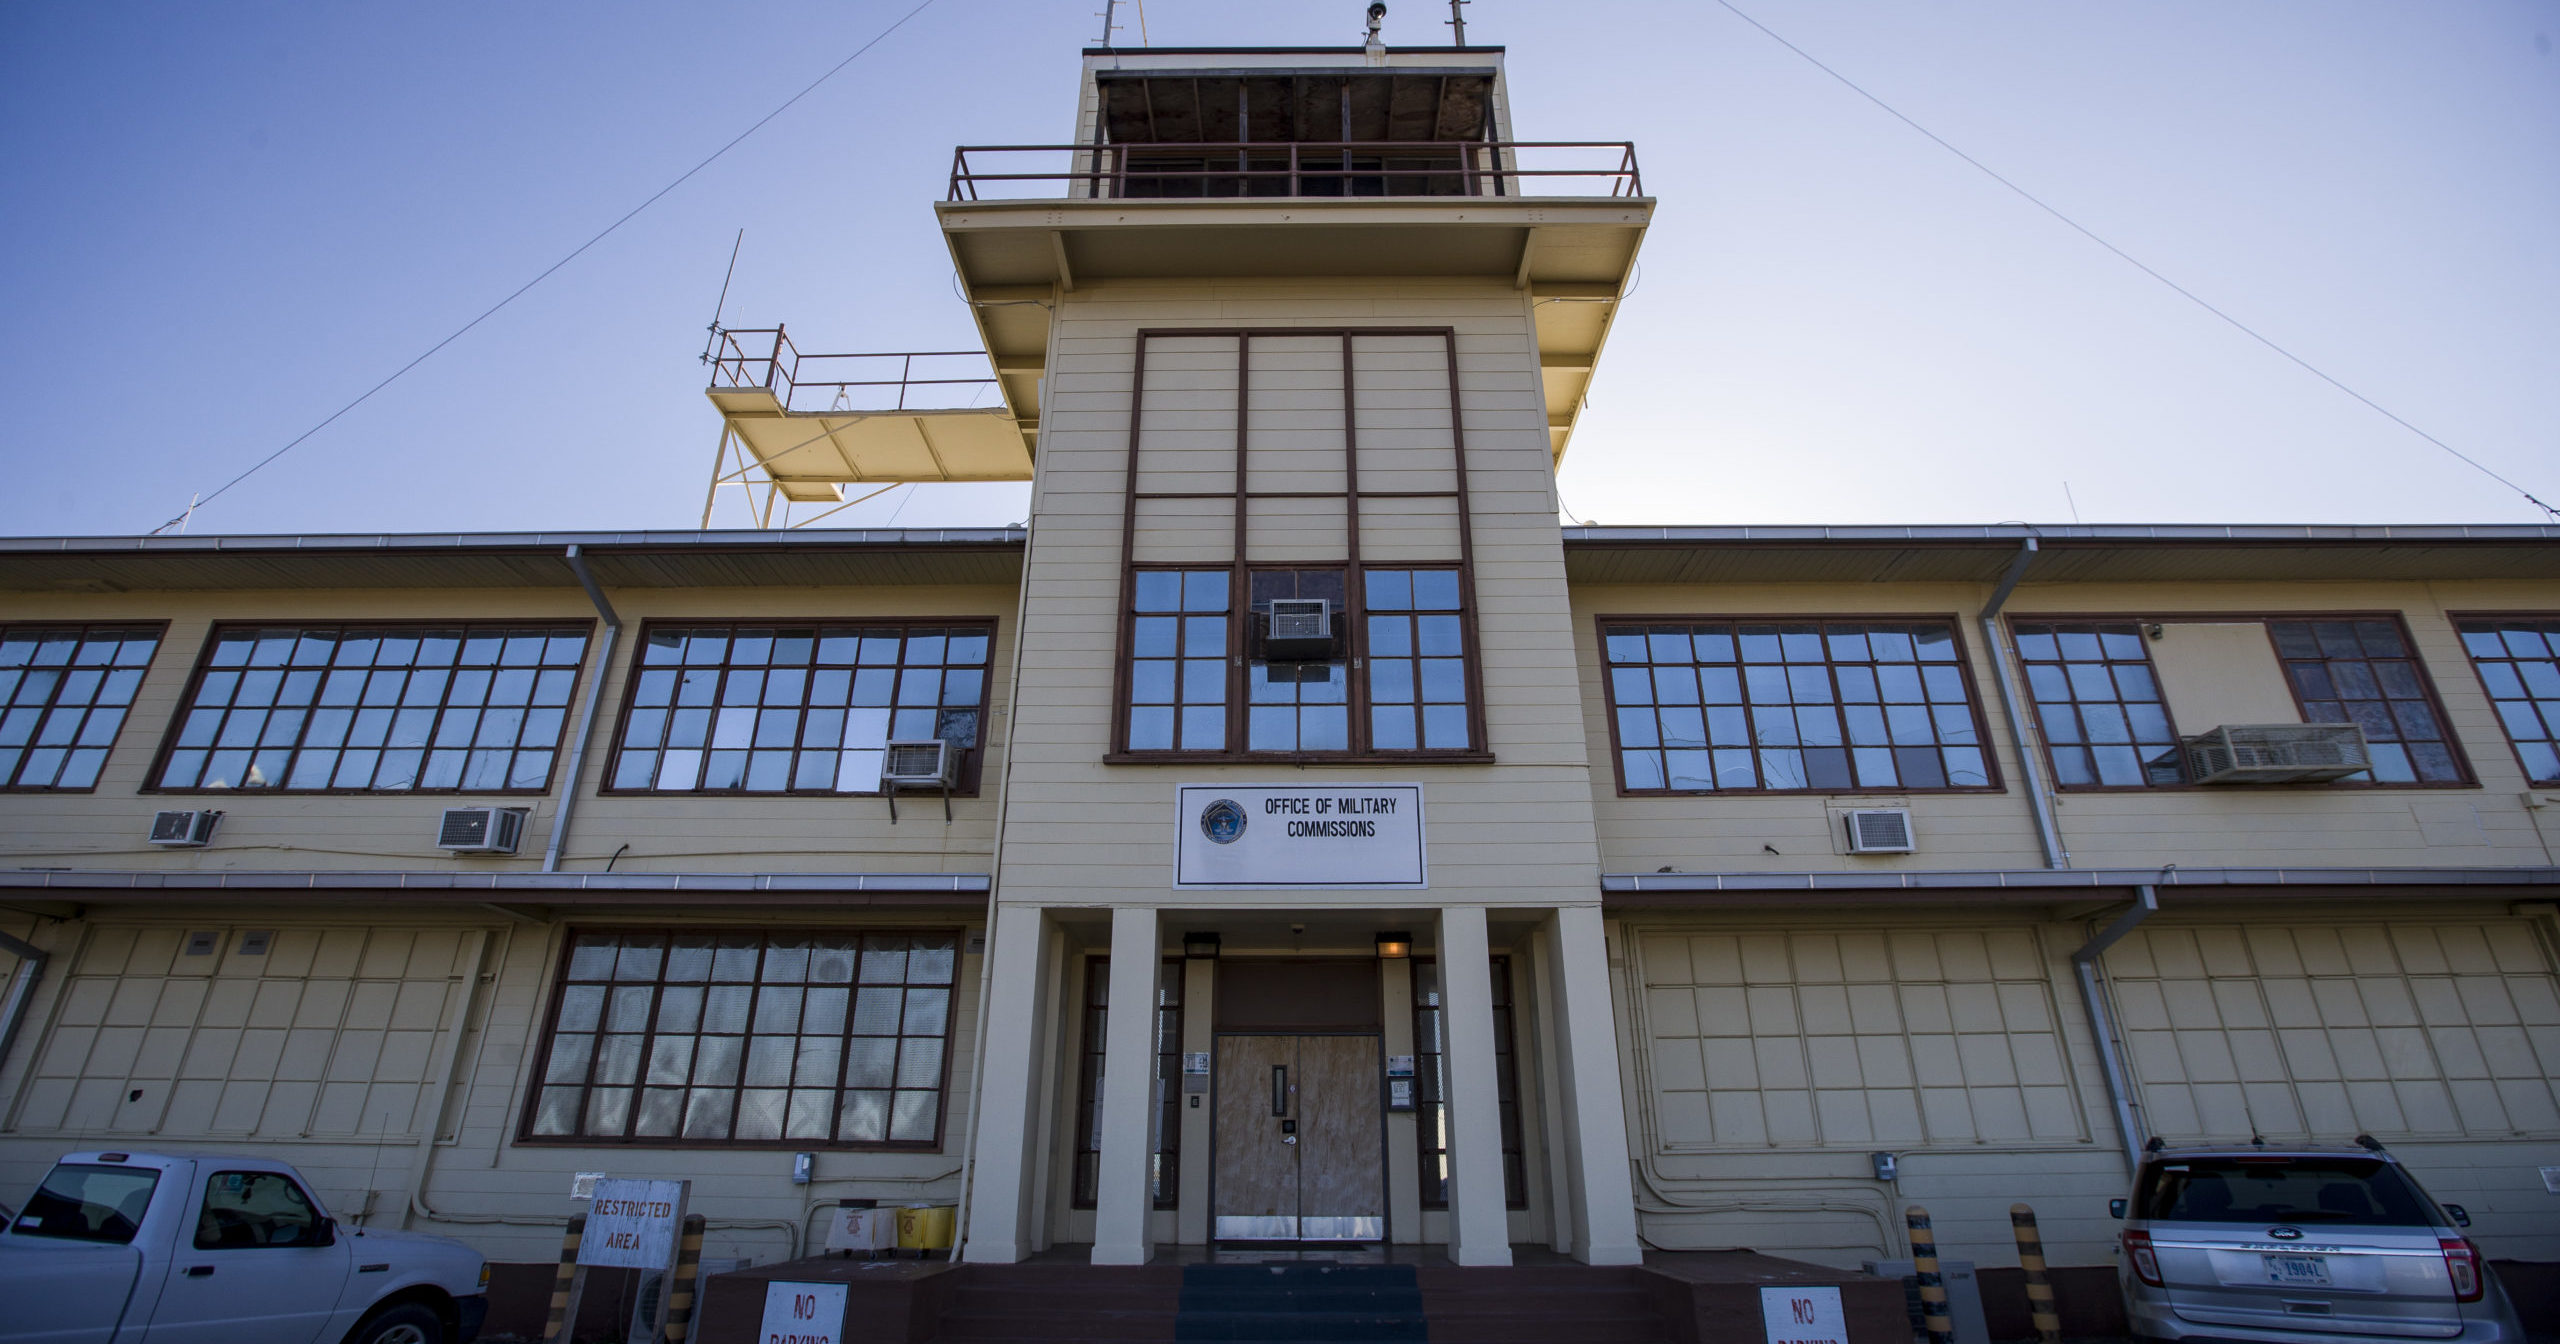 The Office of Military Commissions building is seen on April 18, 2019, at Guantanamo Bay Naval Base, Cuba.